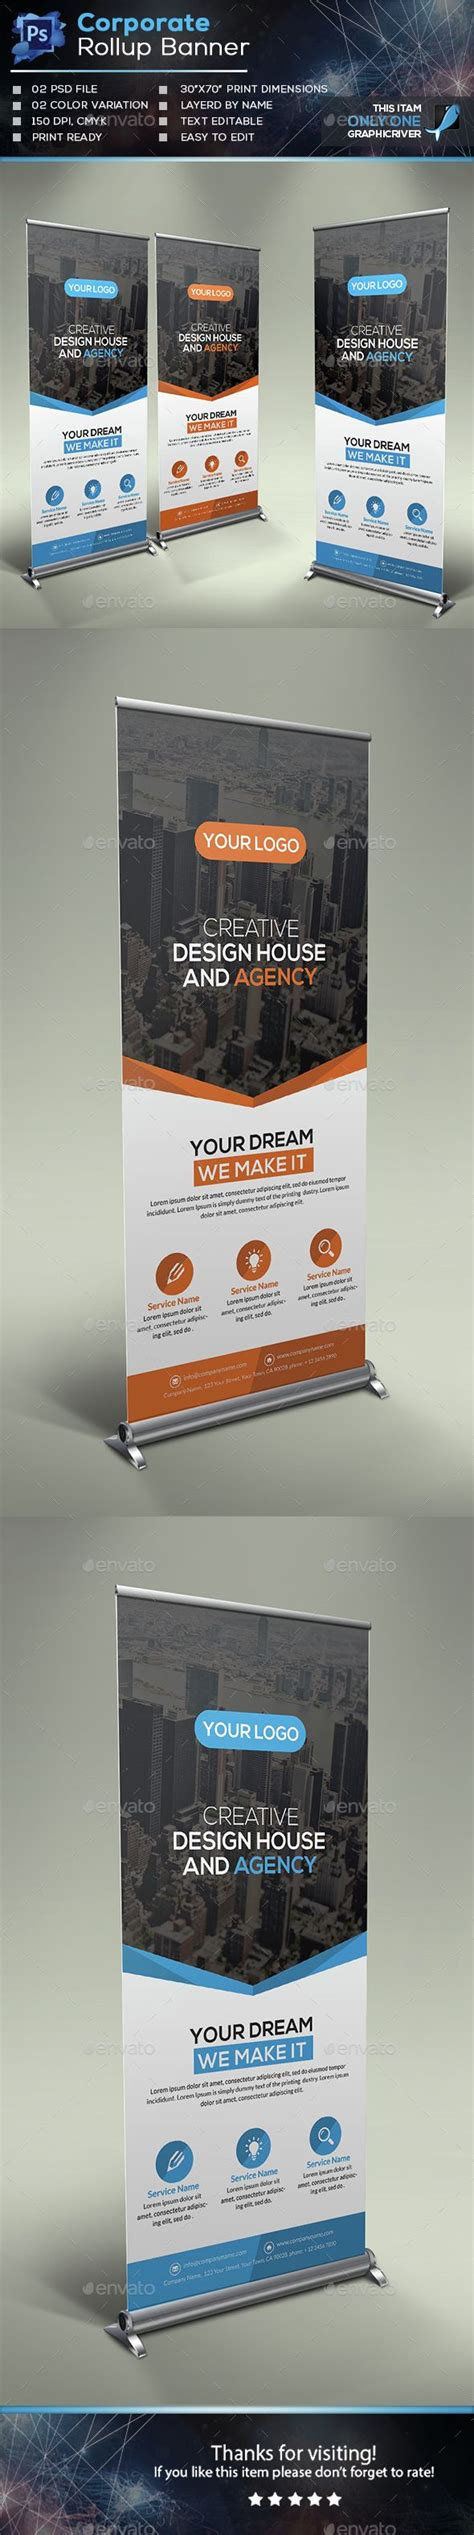 25 Best Retractable Banner Ideas On Pinterest Retractable Banner Template